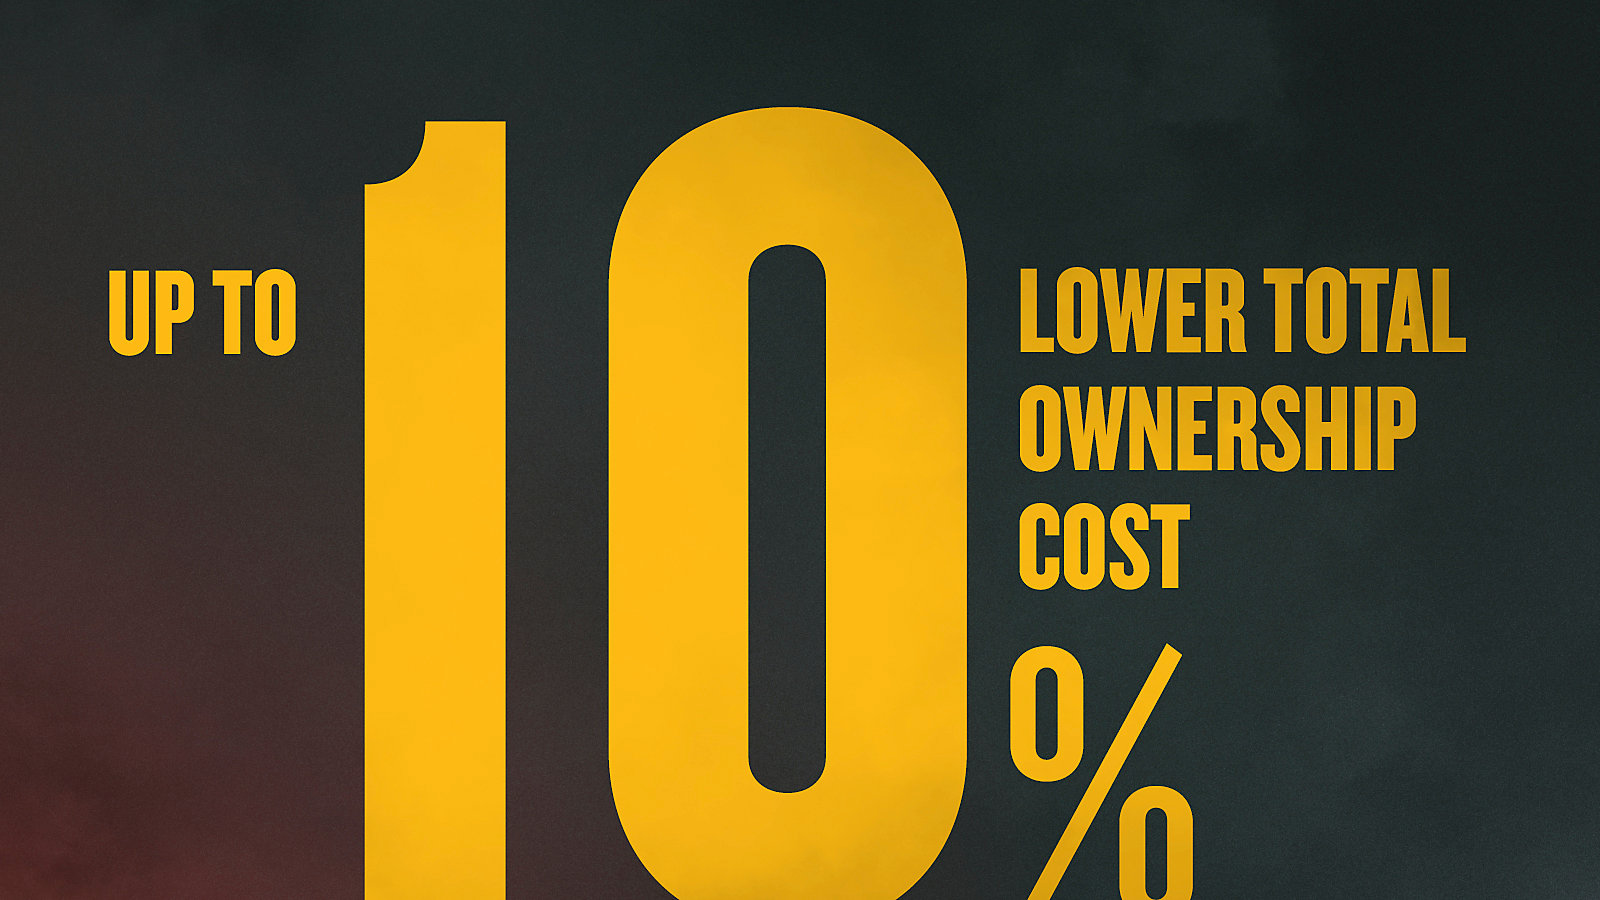 Up to 10% Lower Total Ownership Cost